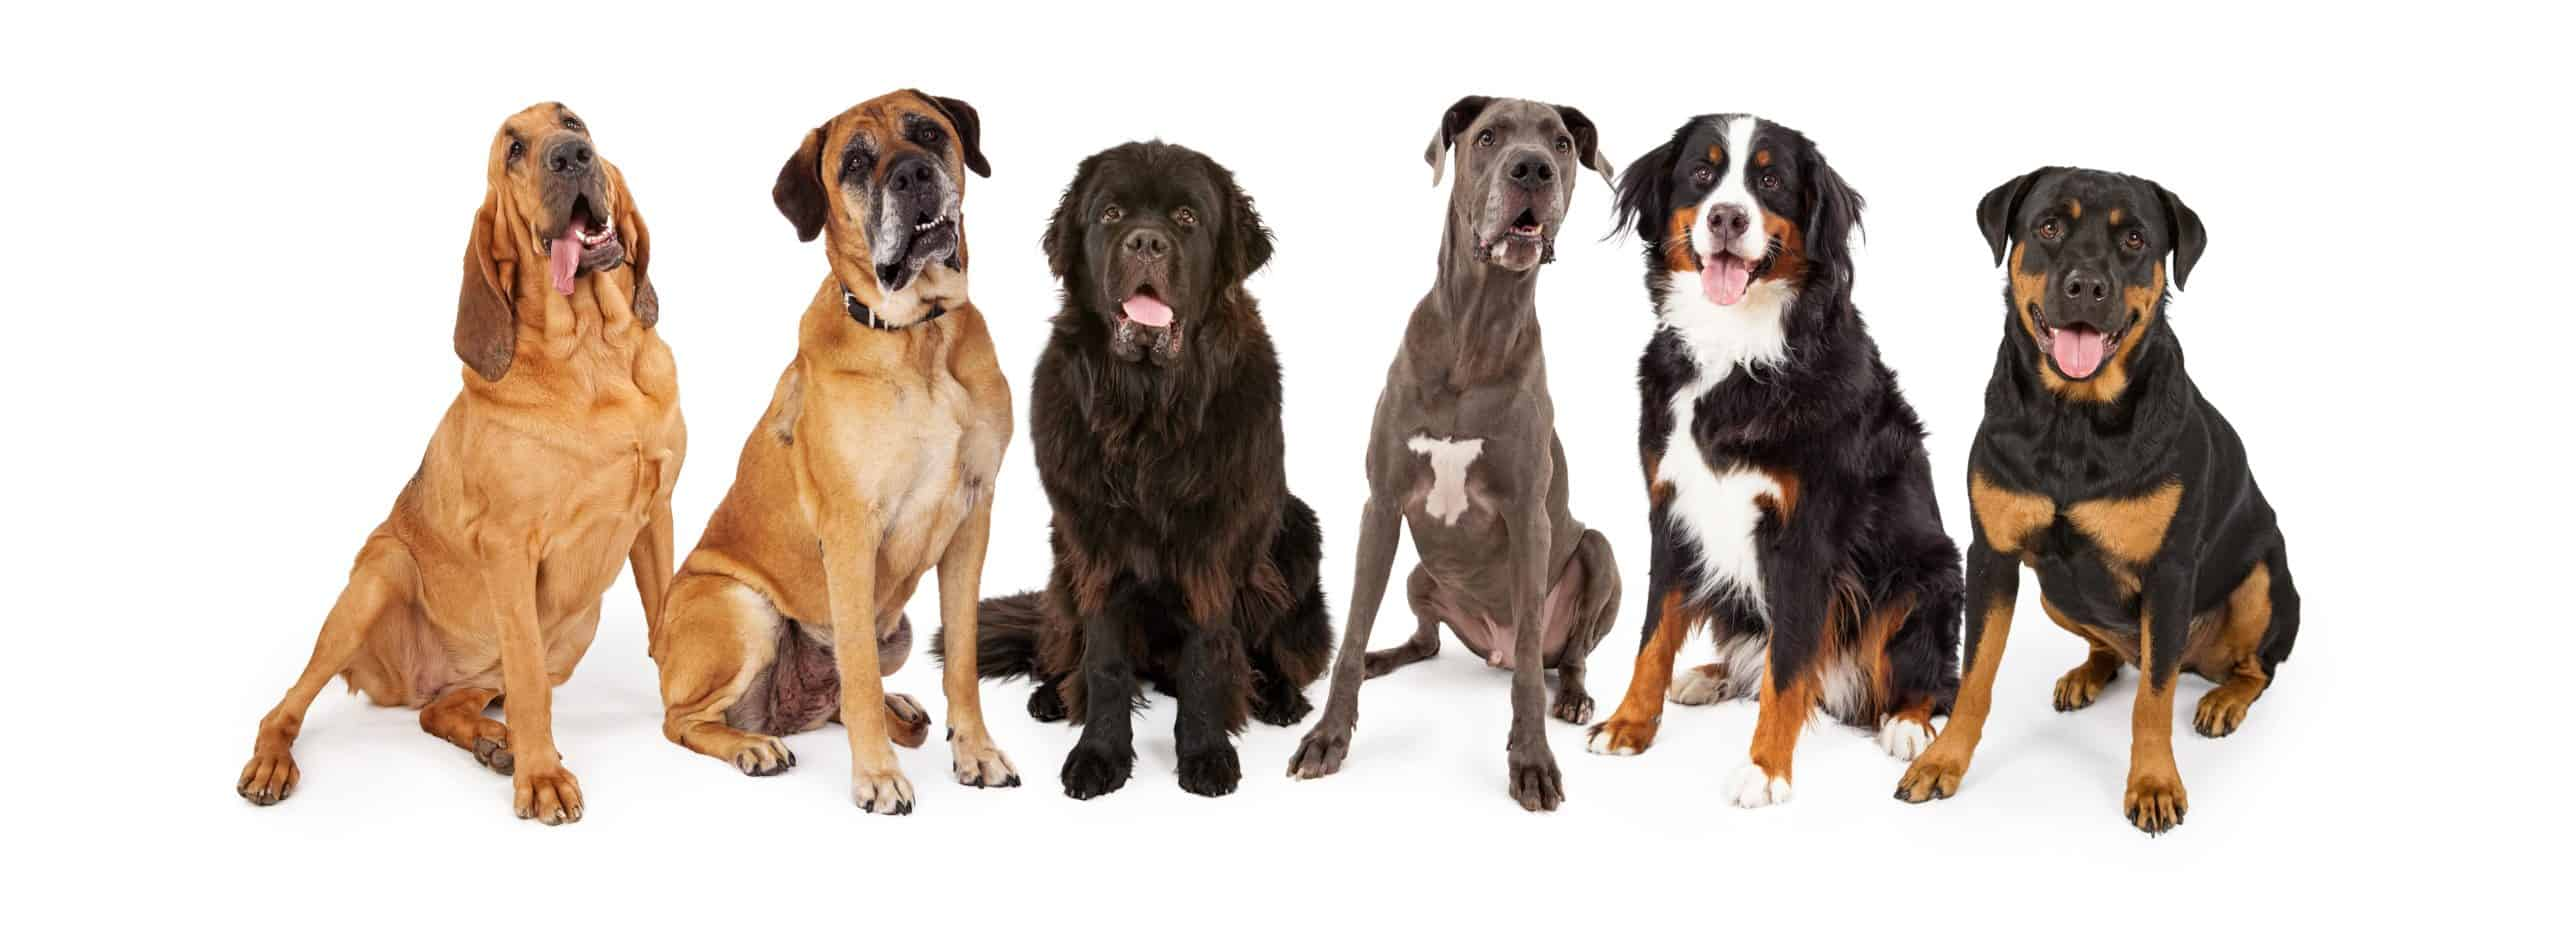 Photo illustration of large breed dogs including a bloodhound, boxer, wolfhound, Great Dane, Bernese Mountain Dog, and Rottweiler. Make sure large breed dogs get the right food, enough exercise, adequate training, and have enough space in your home.